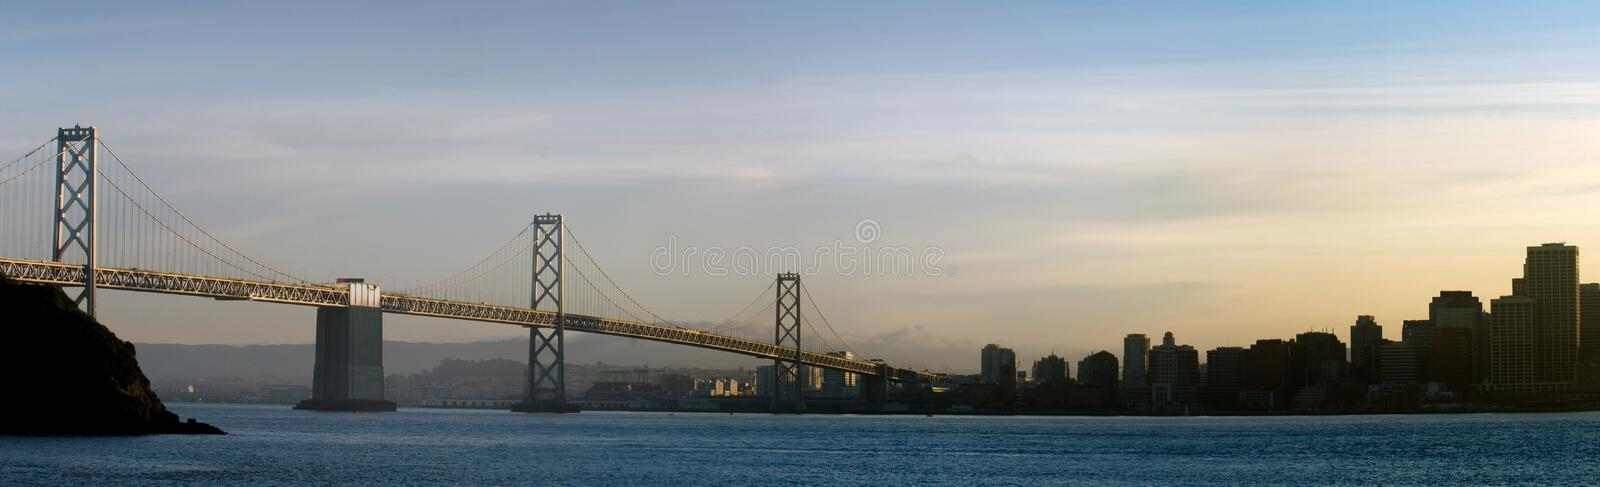 Bay area, California stock images